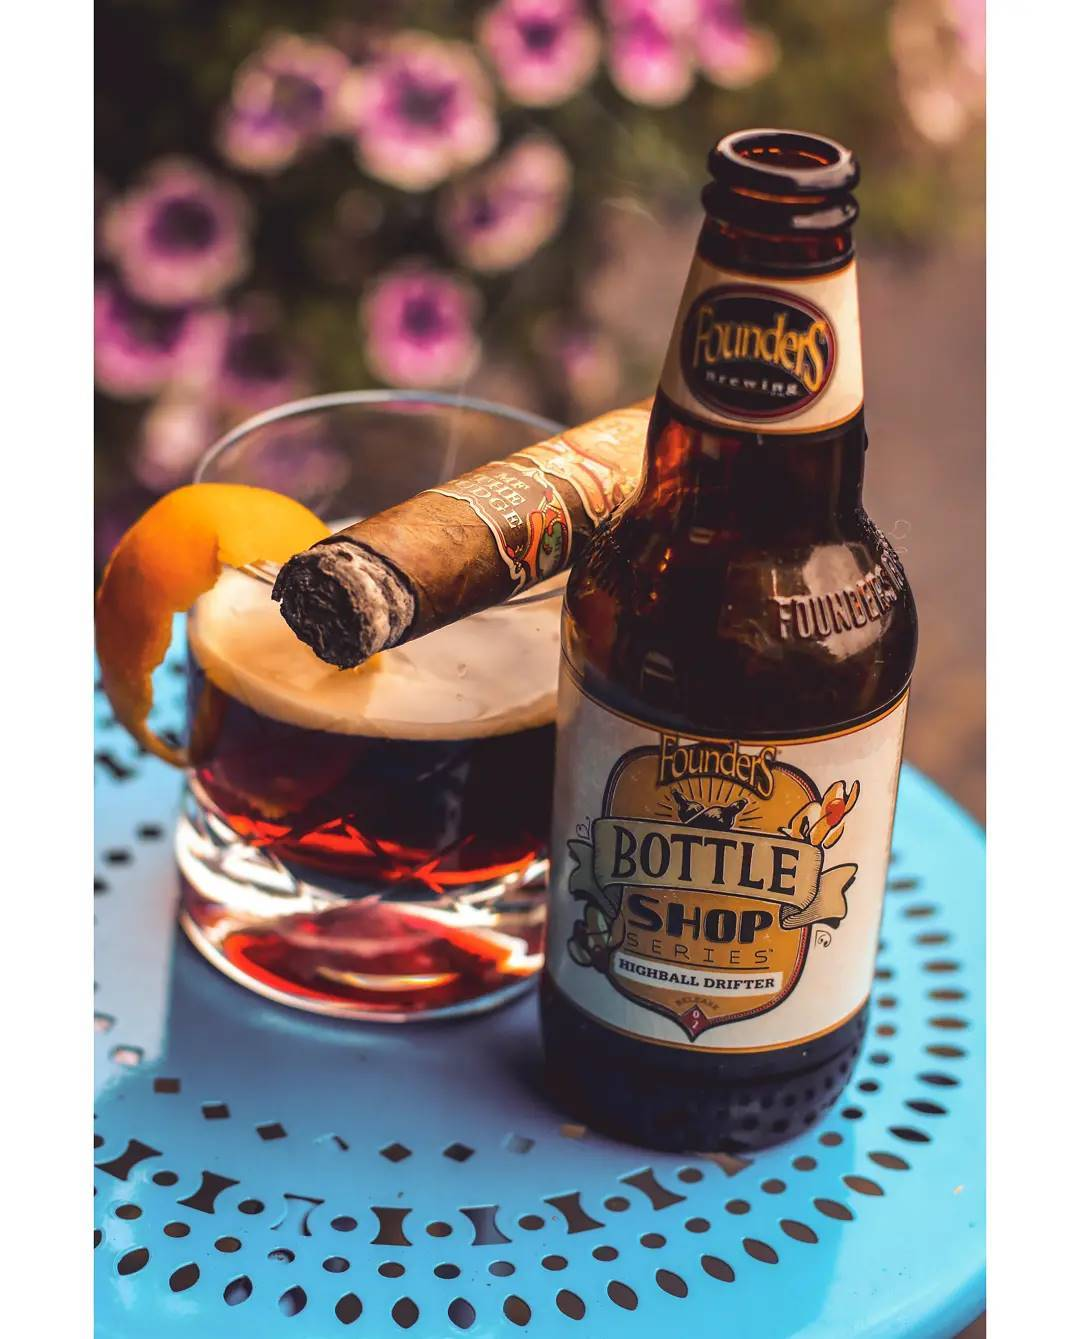 A bottle of Highball Drifter next to a pour and a cigar in front of some flowers.